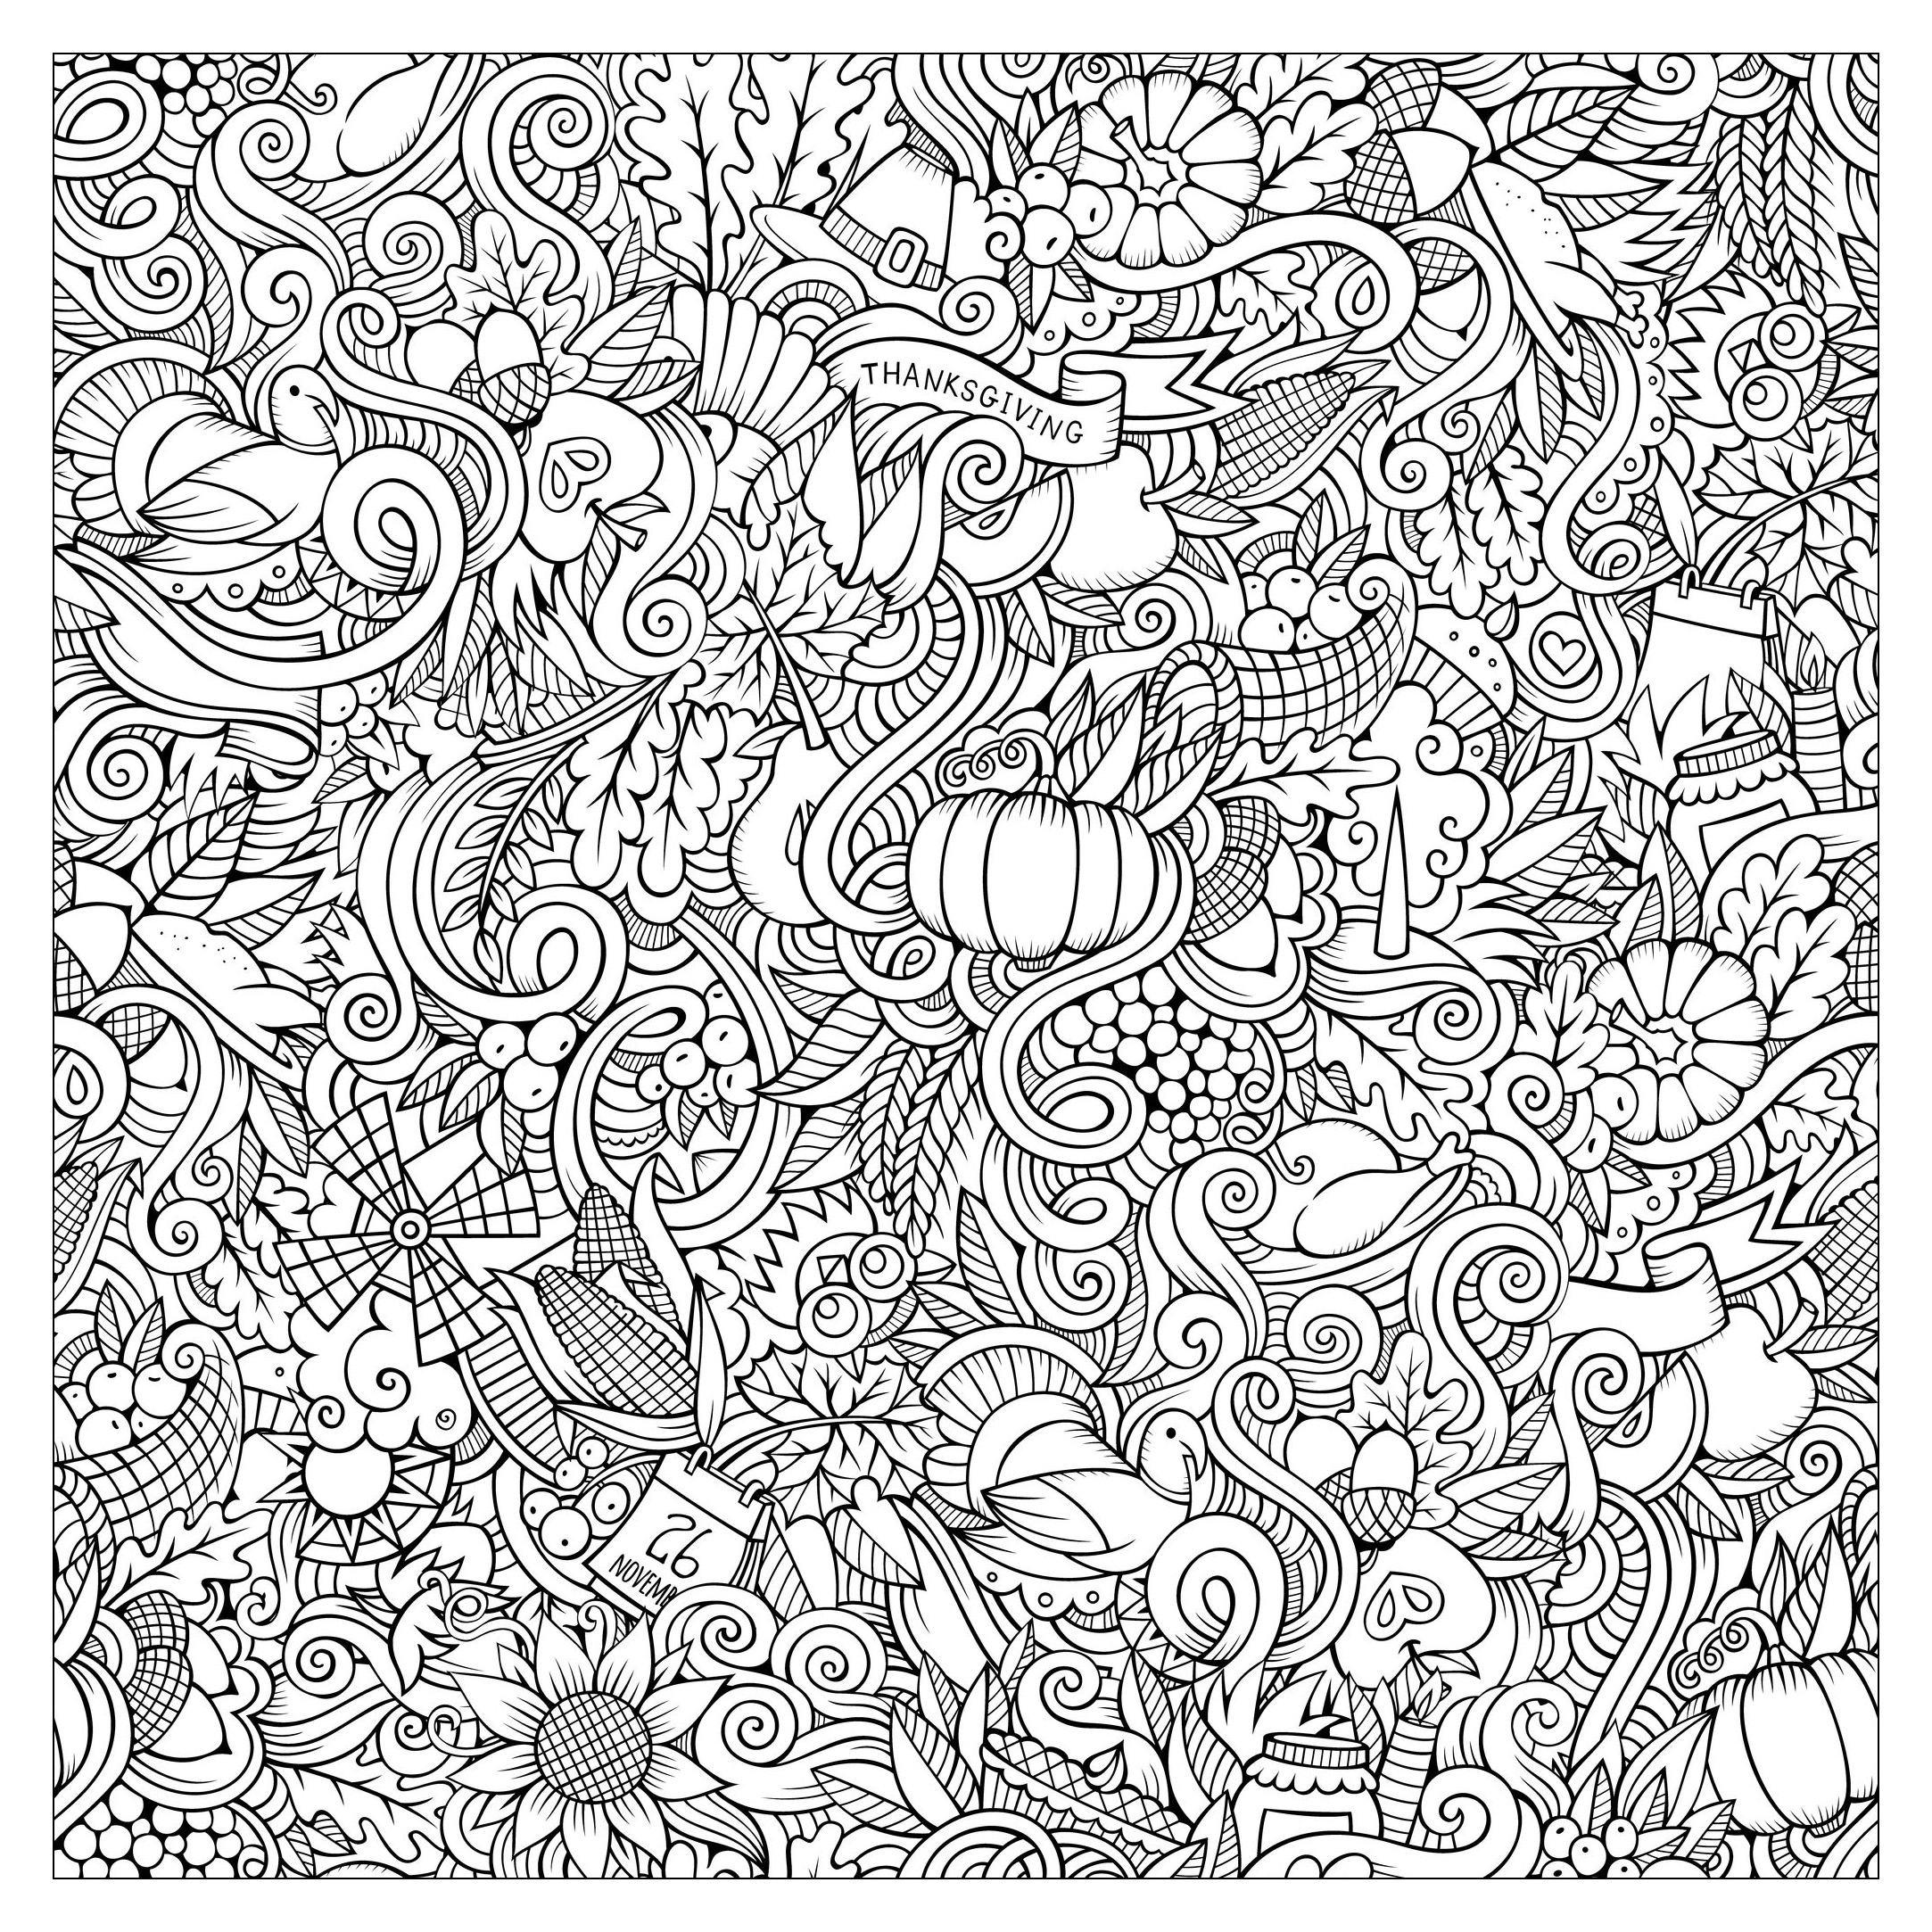 Cartoon vector hand drawn doodles : thanksgiving autumn ...